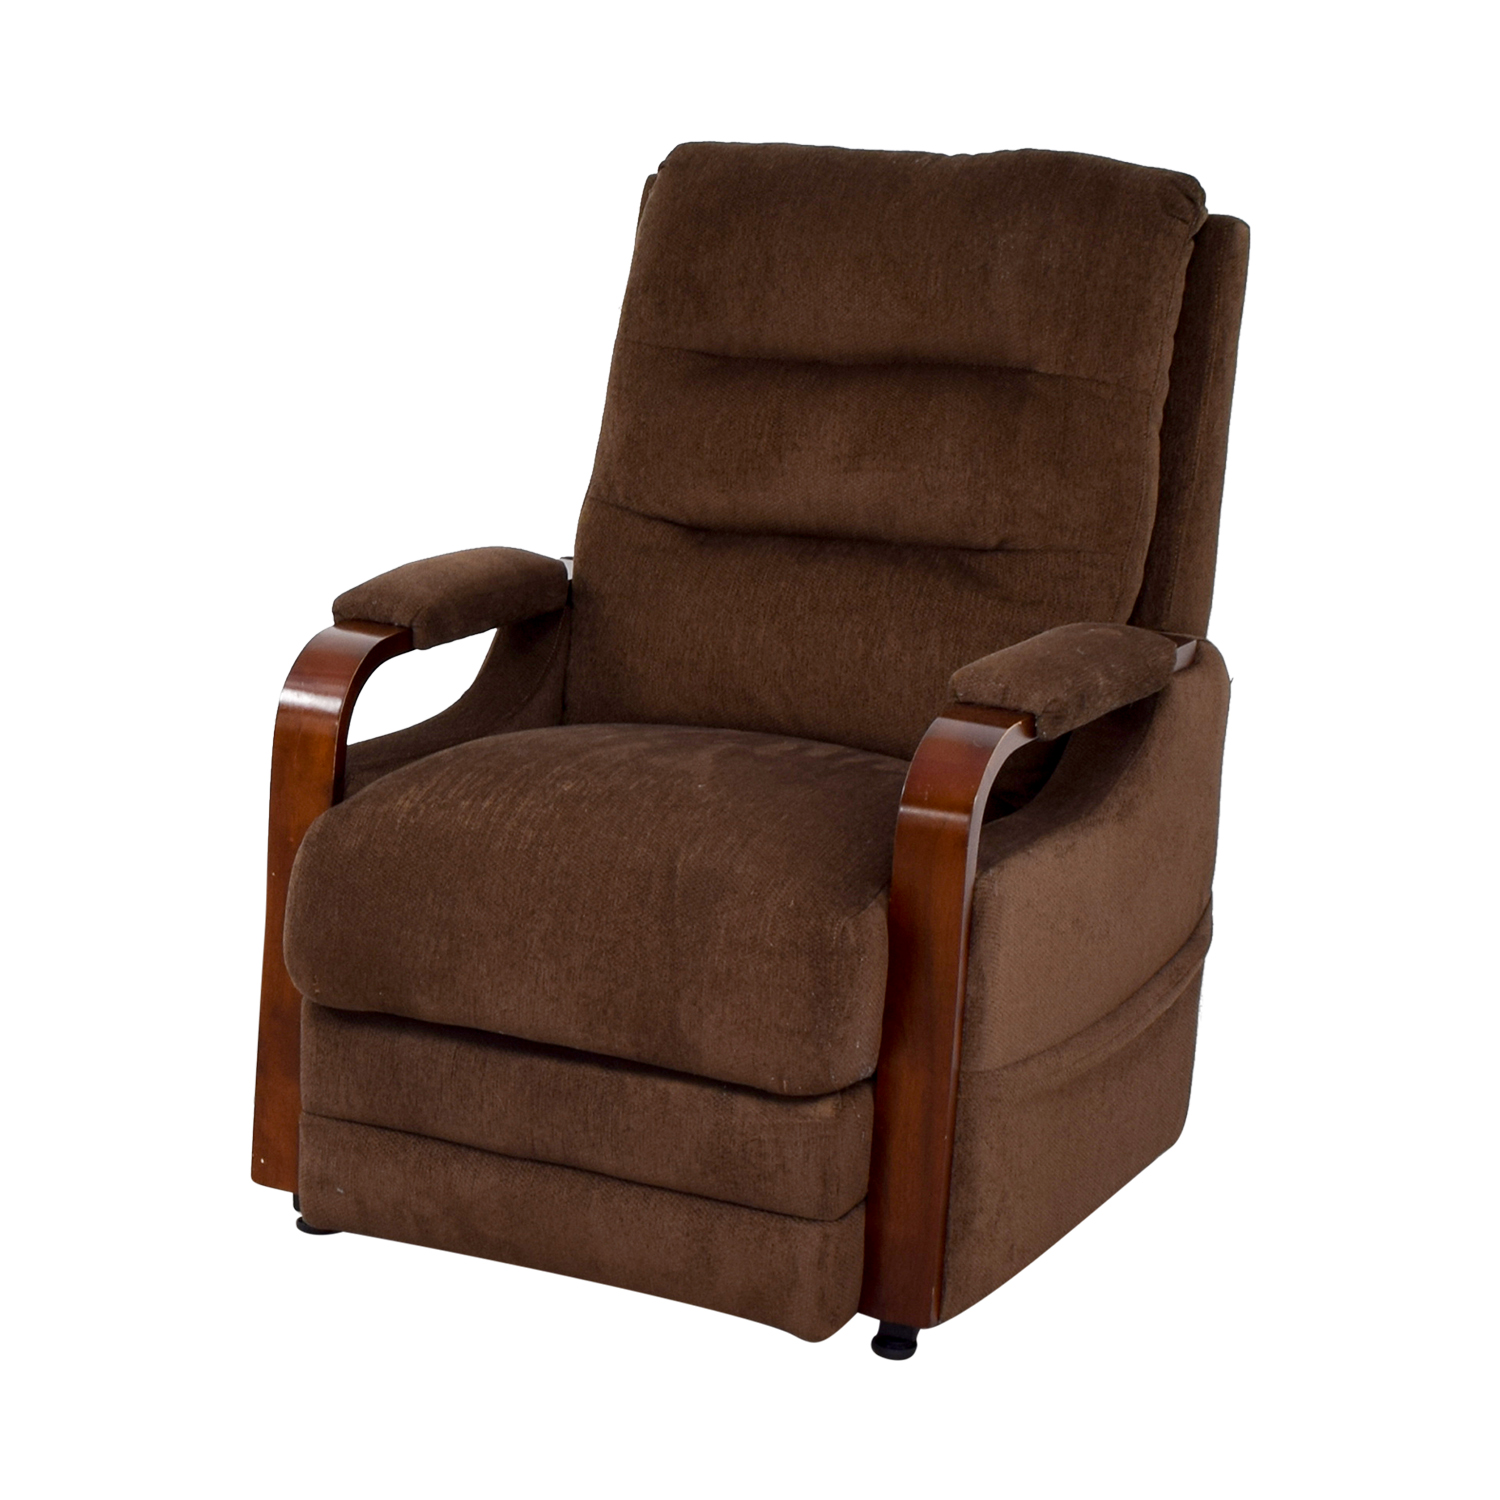 90 off bob 39 s furniture bob 39 s furniture brown recliner for Furniture 90 off